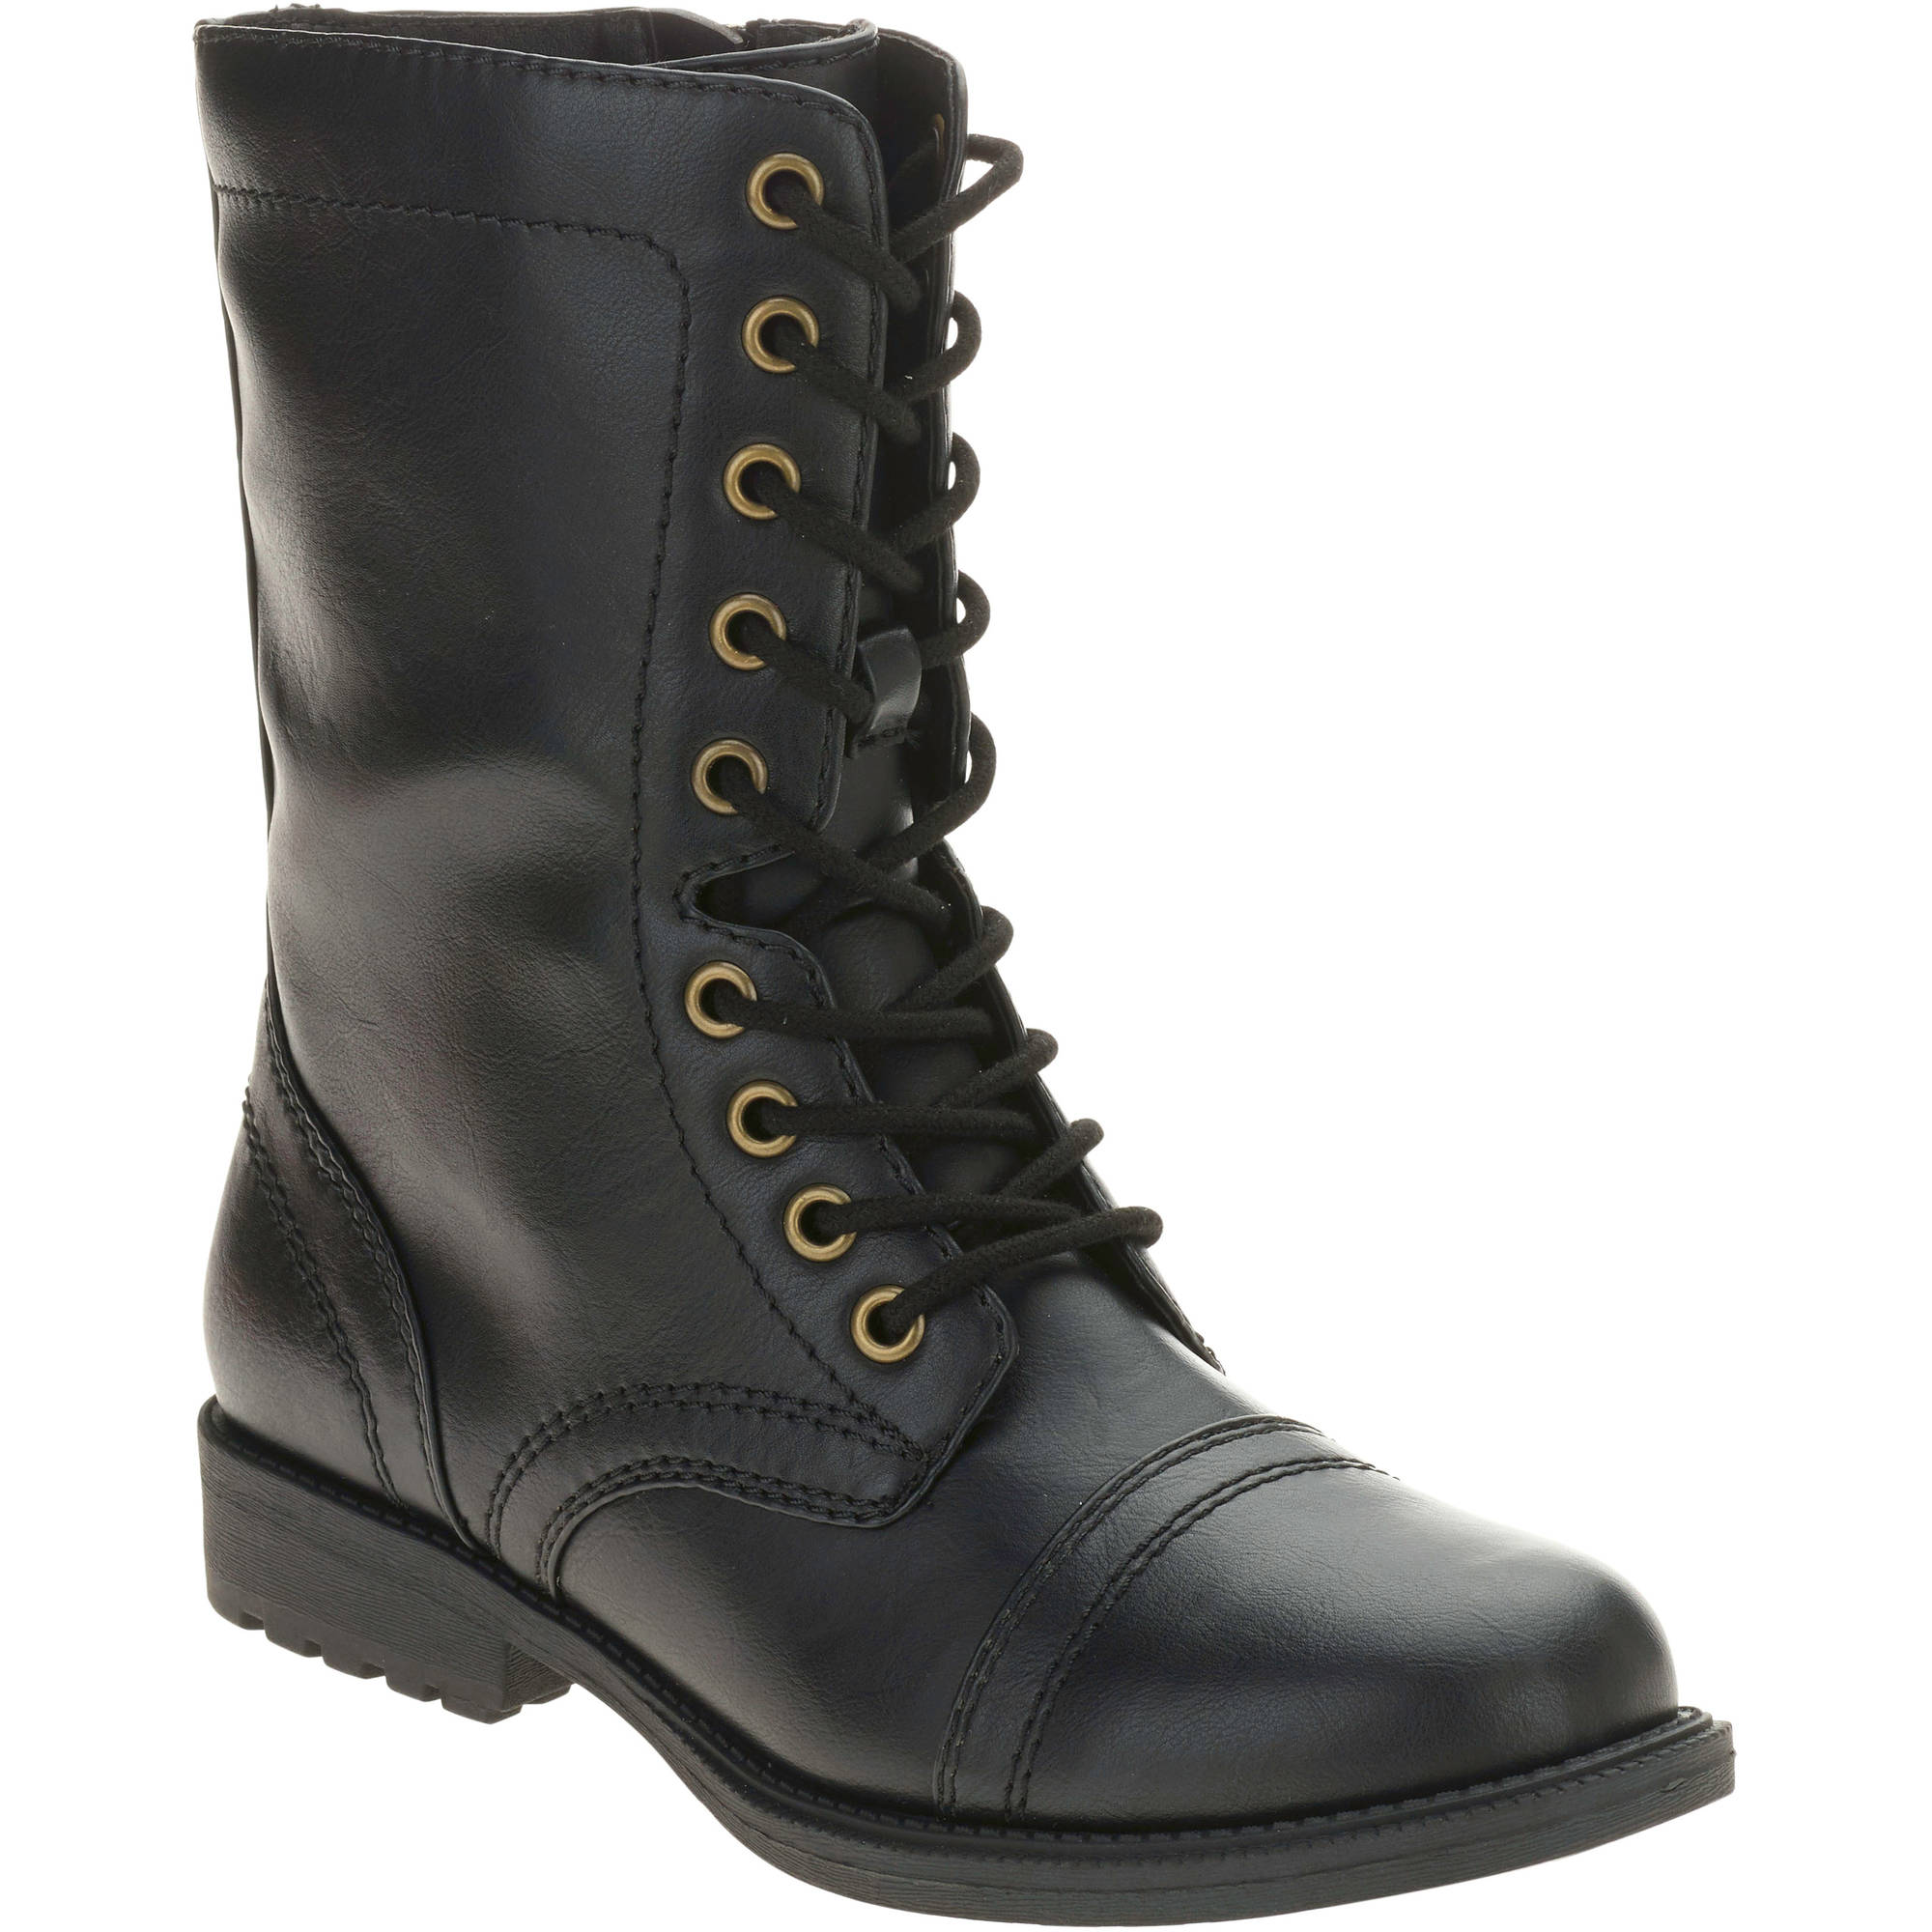 Faded Glory Women's Combat Boot